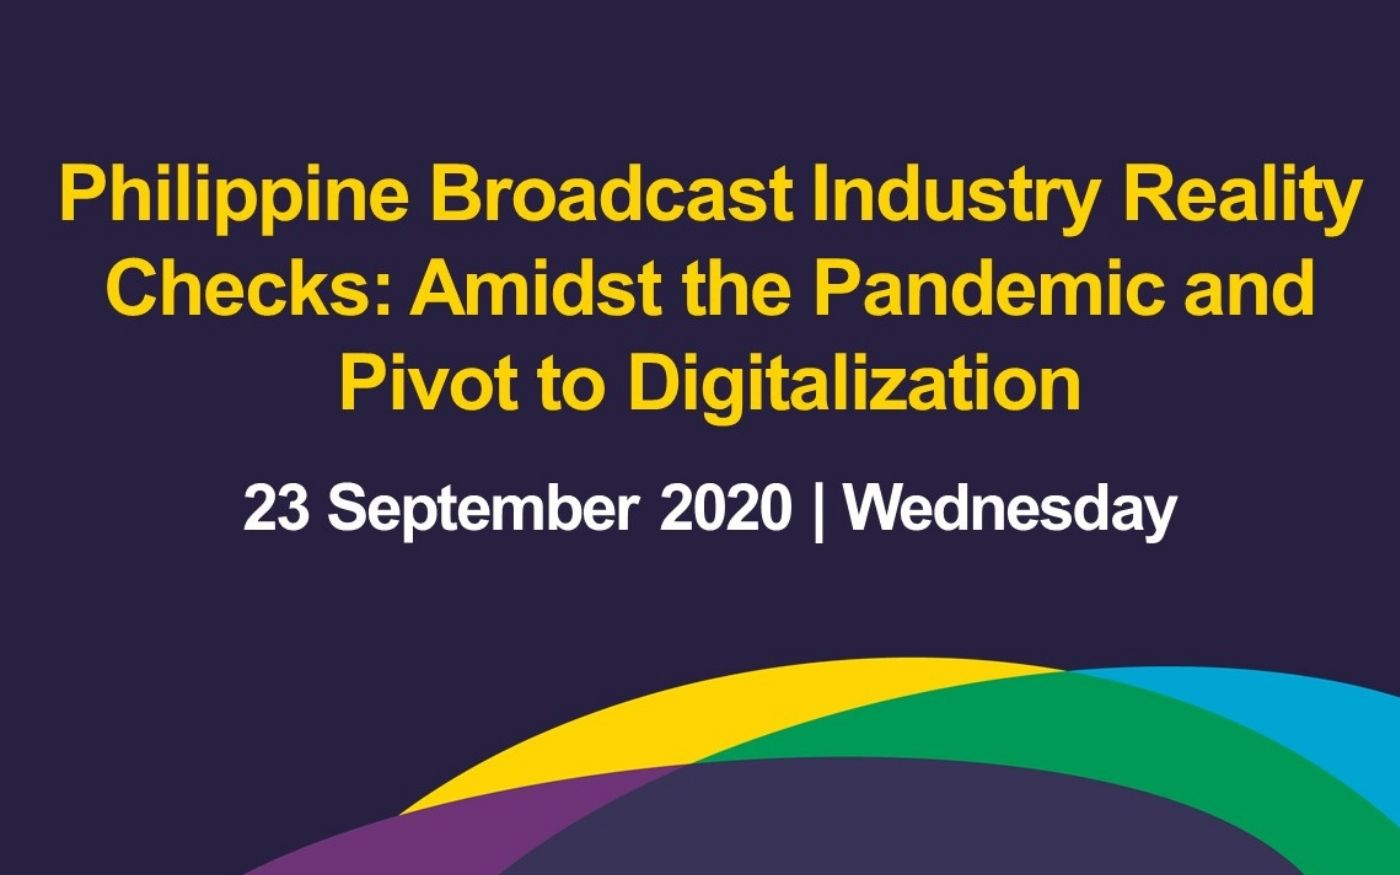 Philippine Broadcast Industry Reality Checks: Amidst the Pandemic and Pivot to Digitalization